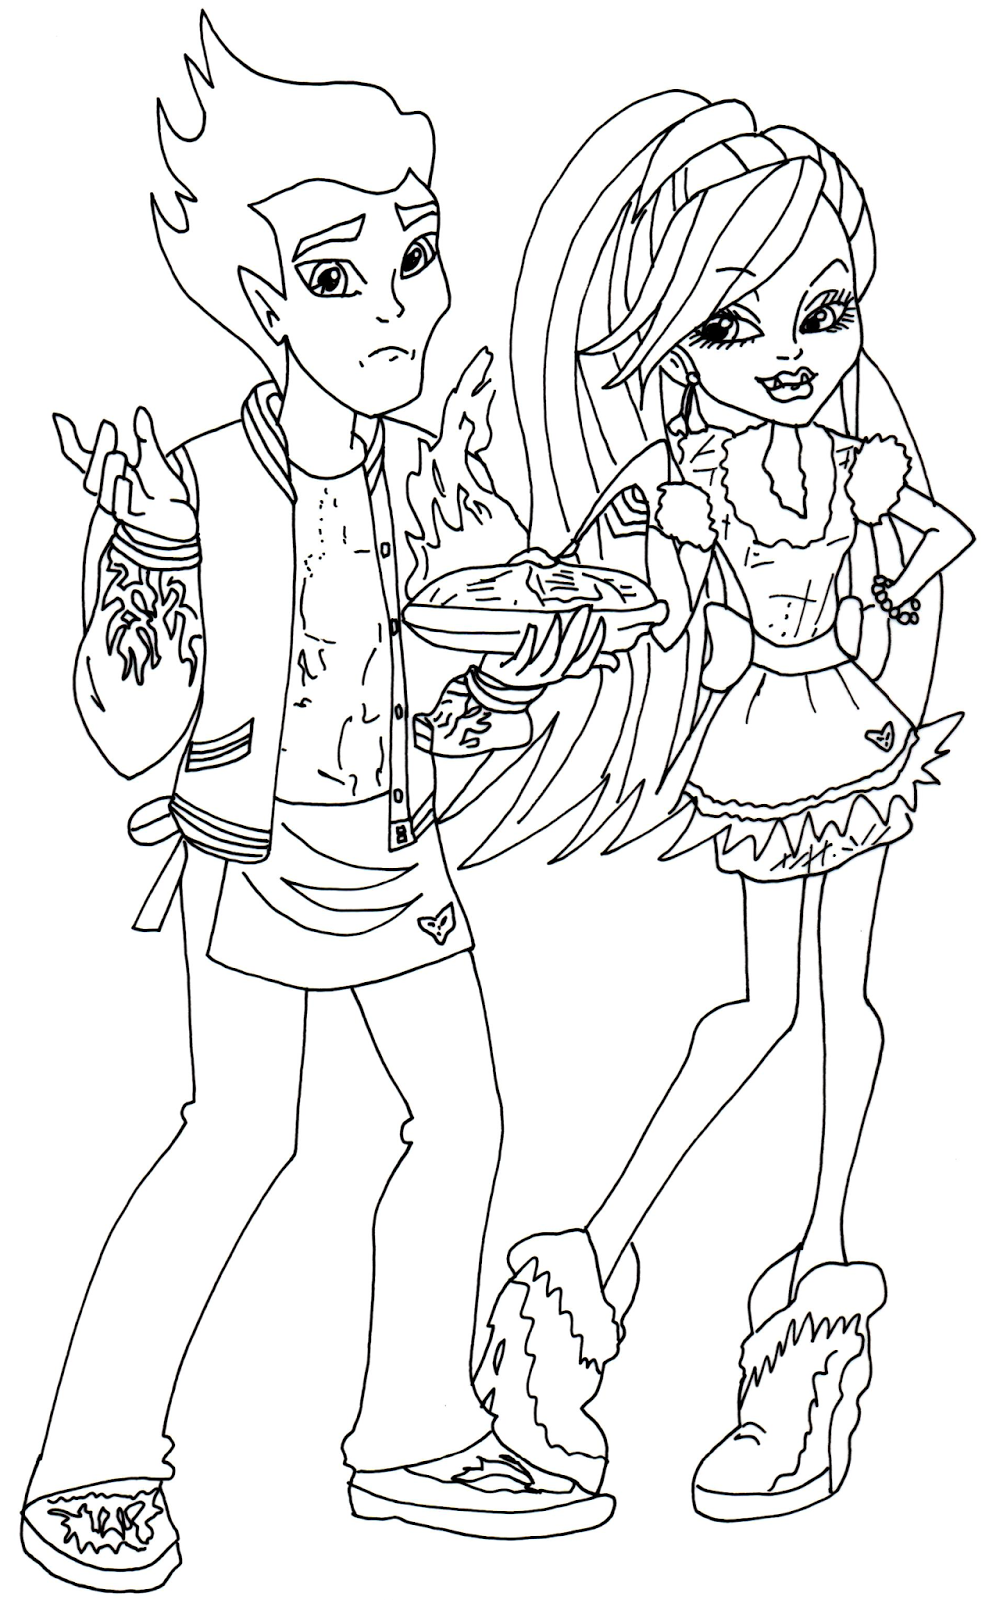 new monster high dolls 2014 coloring pages: Abbey and